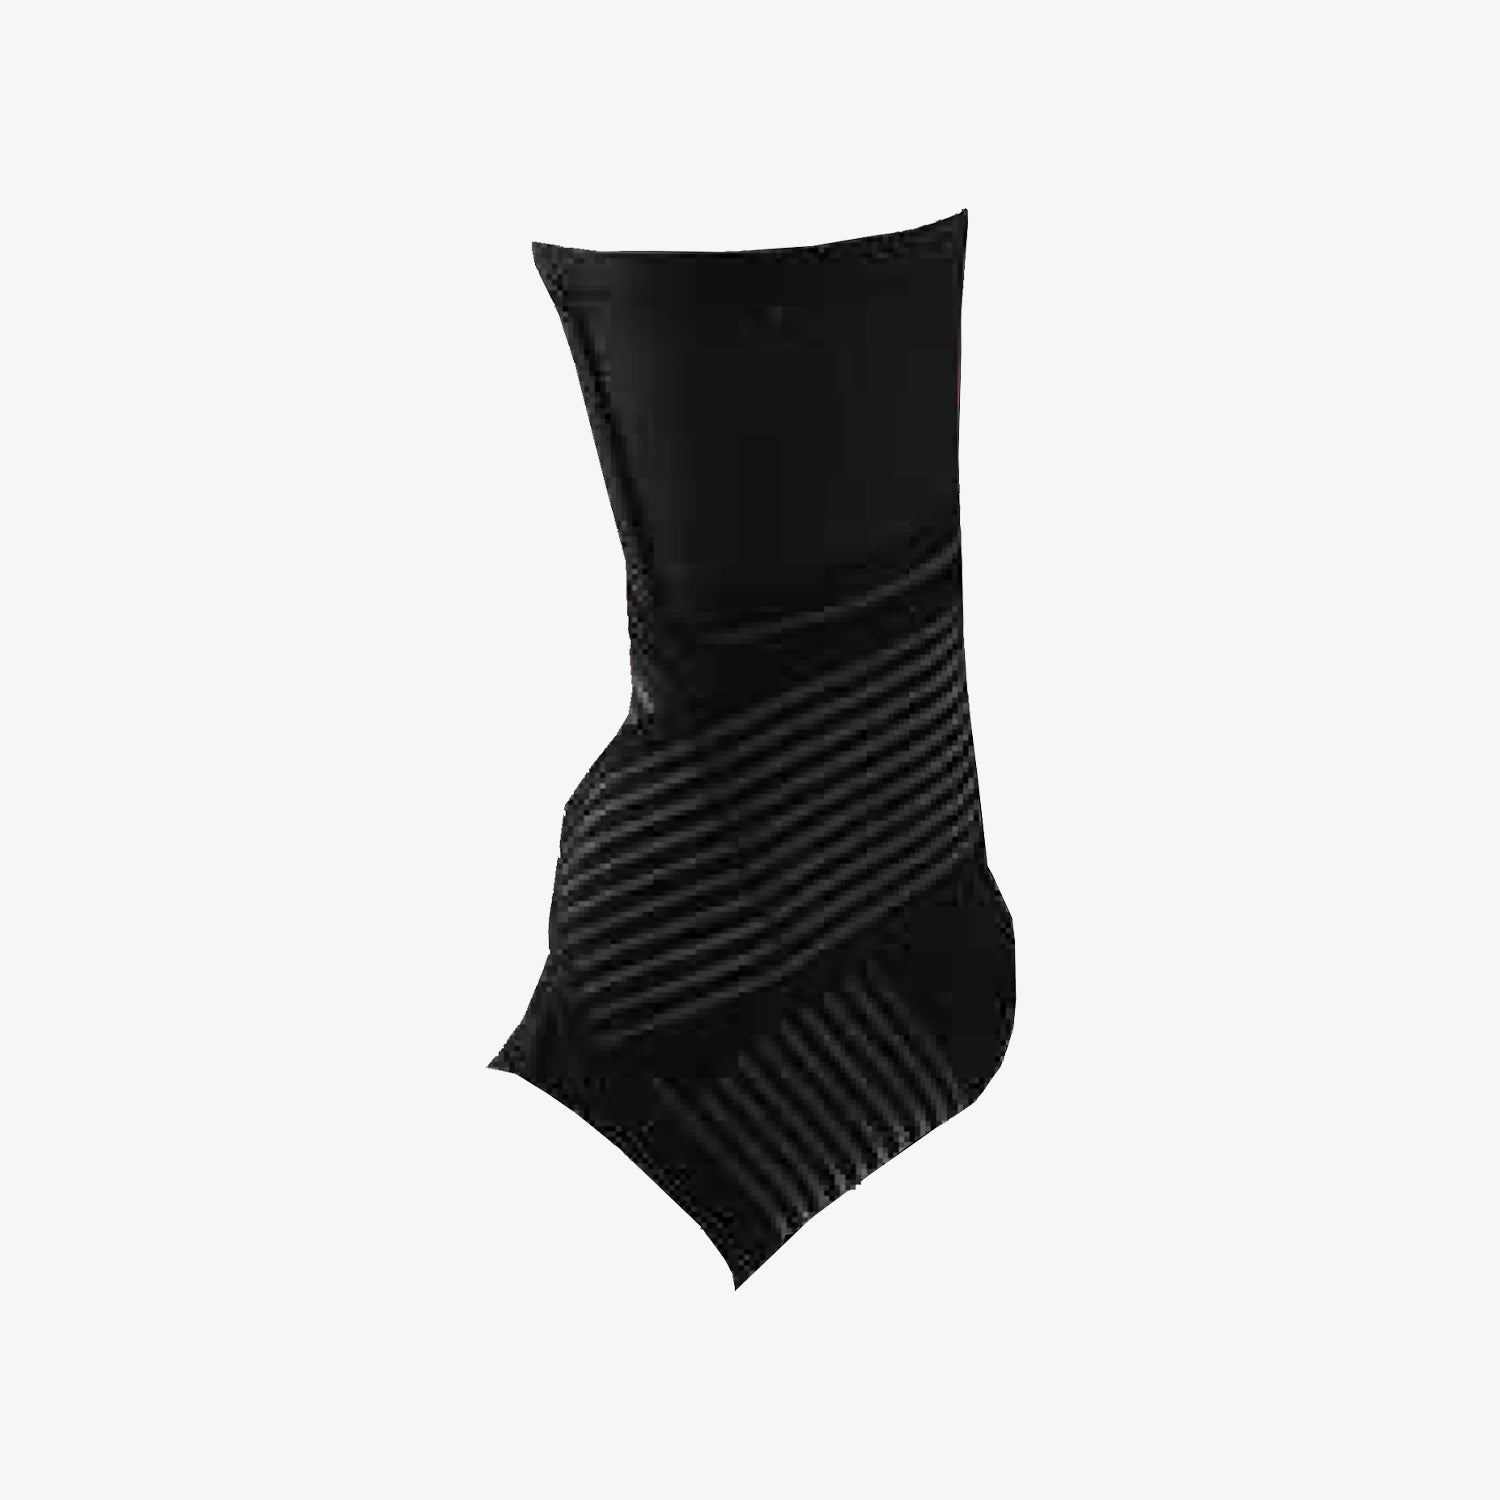 Ankle Support Small - Black